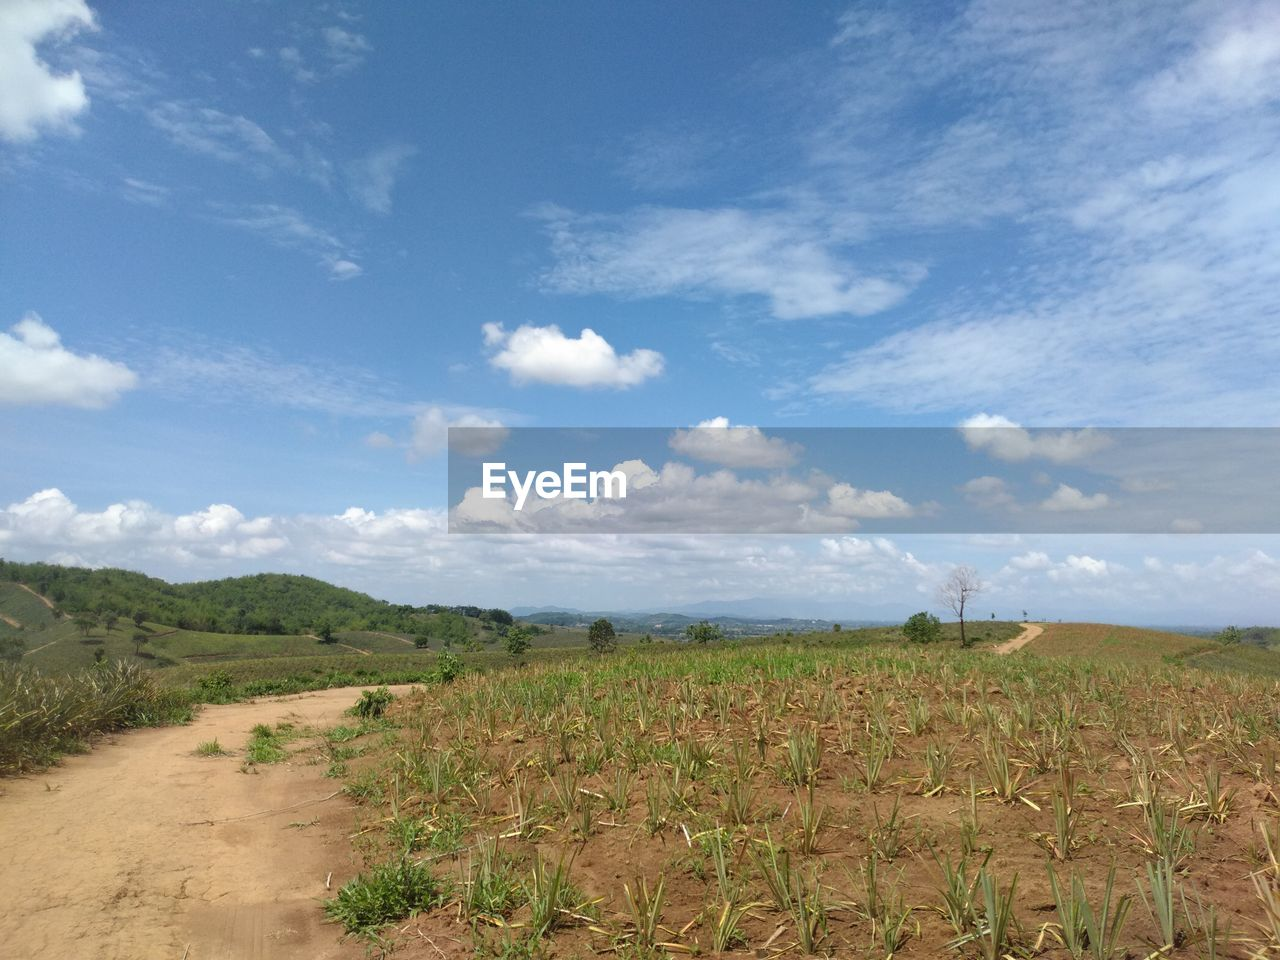 sky, landscape, environment, cloud - sky, land, tranquility, field, tranquil scene, scenics - nature, beauty in nature, day, nature, rural scene, plant, no people, agriculture, growth, non-urban scene, outdoors, horizon over land, plantation